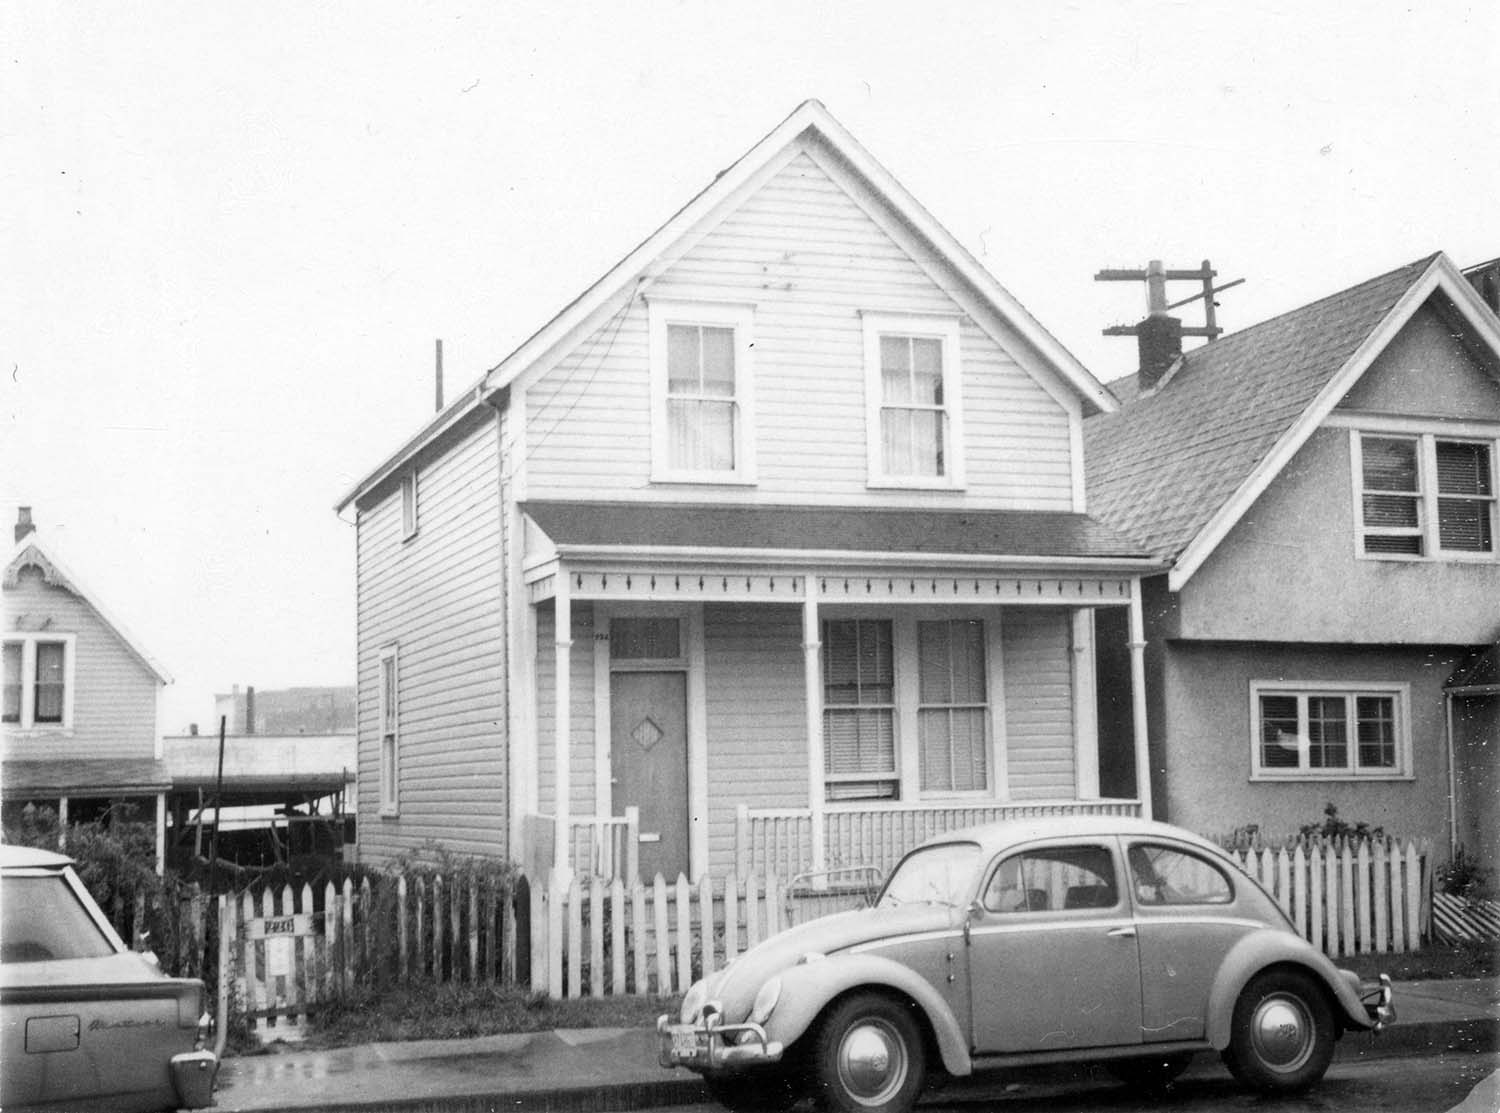 224 Union Street, front, 1968. Photograph also shows portion of 218 Union Street. Reference code COV-S168-: CVA 203-38